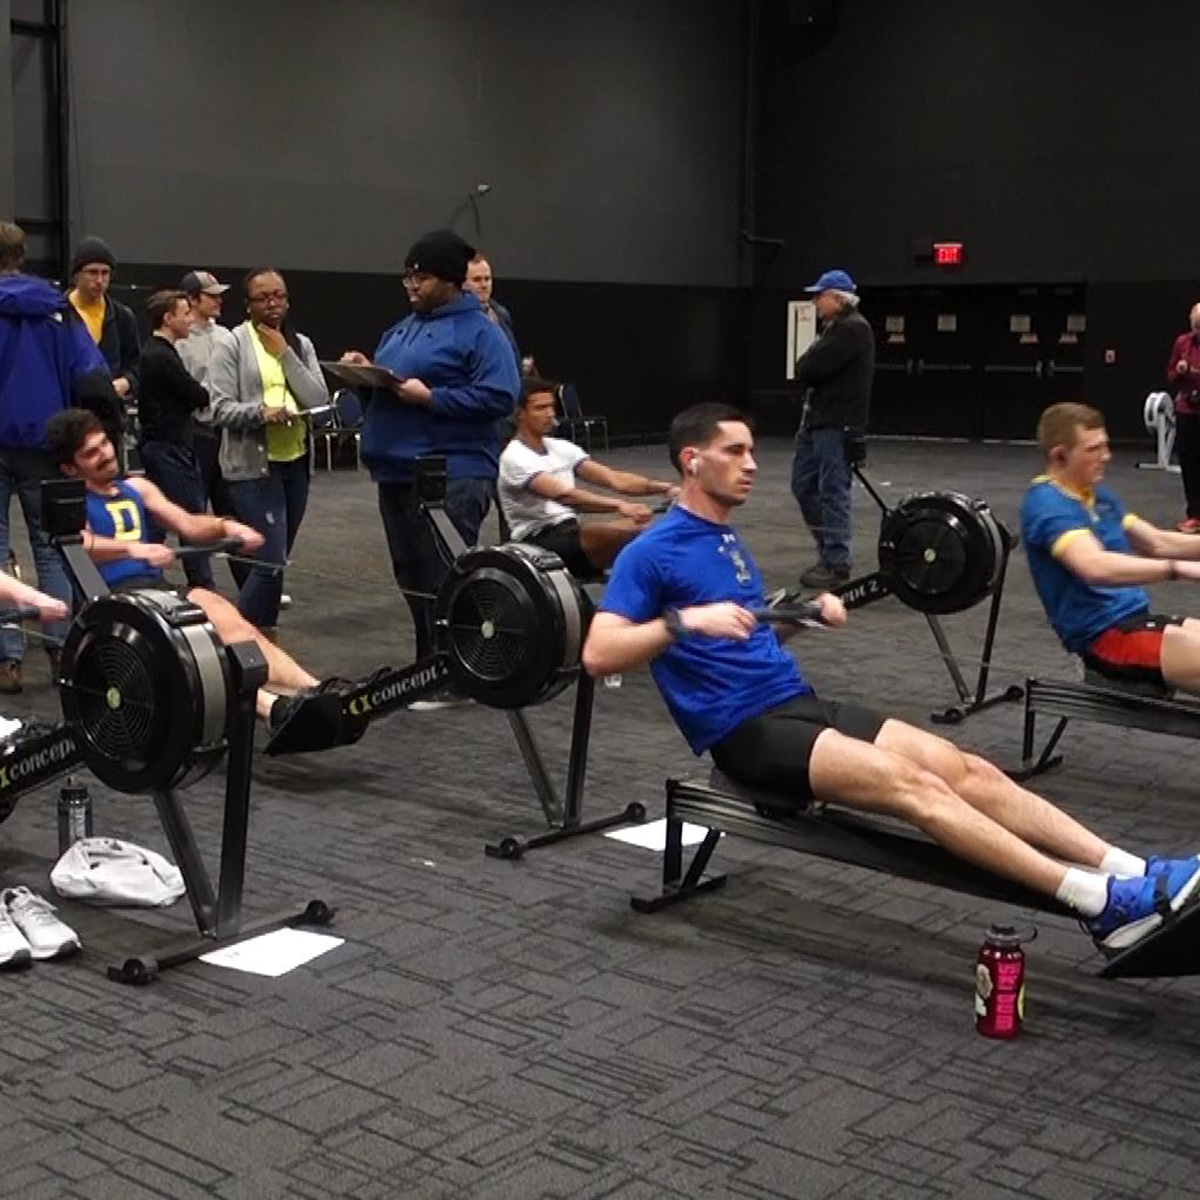 University of Delaware Men's Crew won the Winter Race to Raise fundraising competition for the second year in a row by raising more than $5,000 and also defended its title in the Run, Row, Bike Men's Team division of the indoor triathlon.